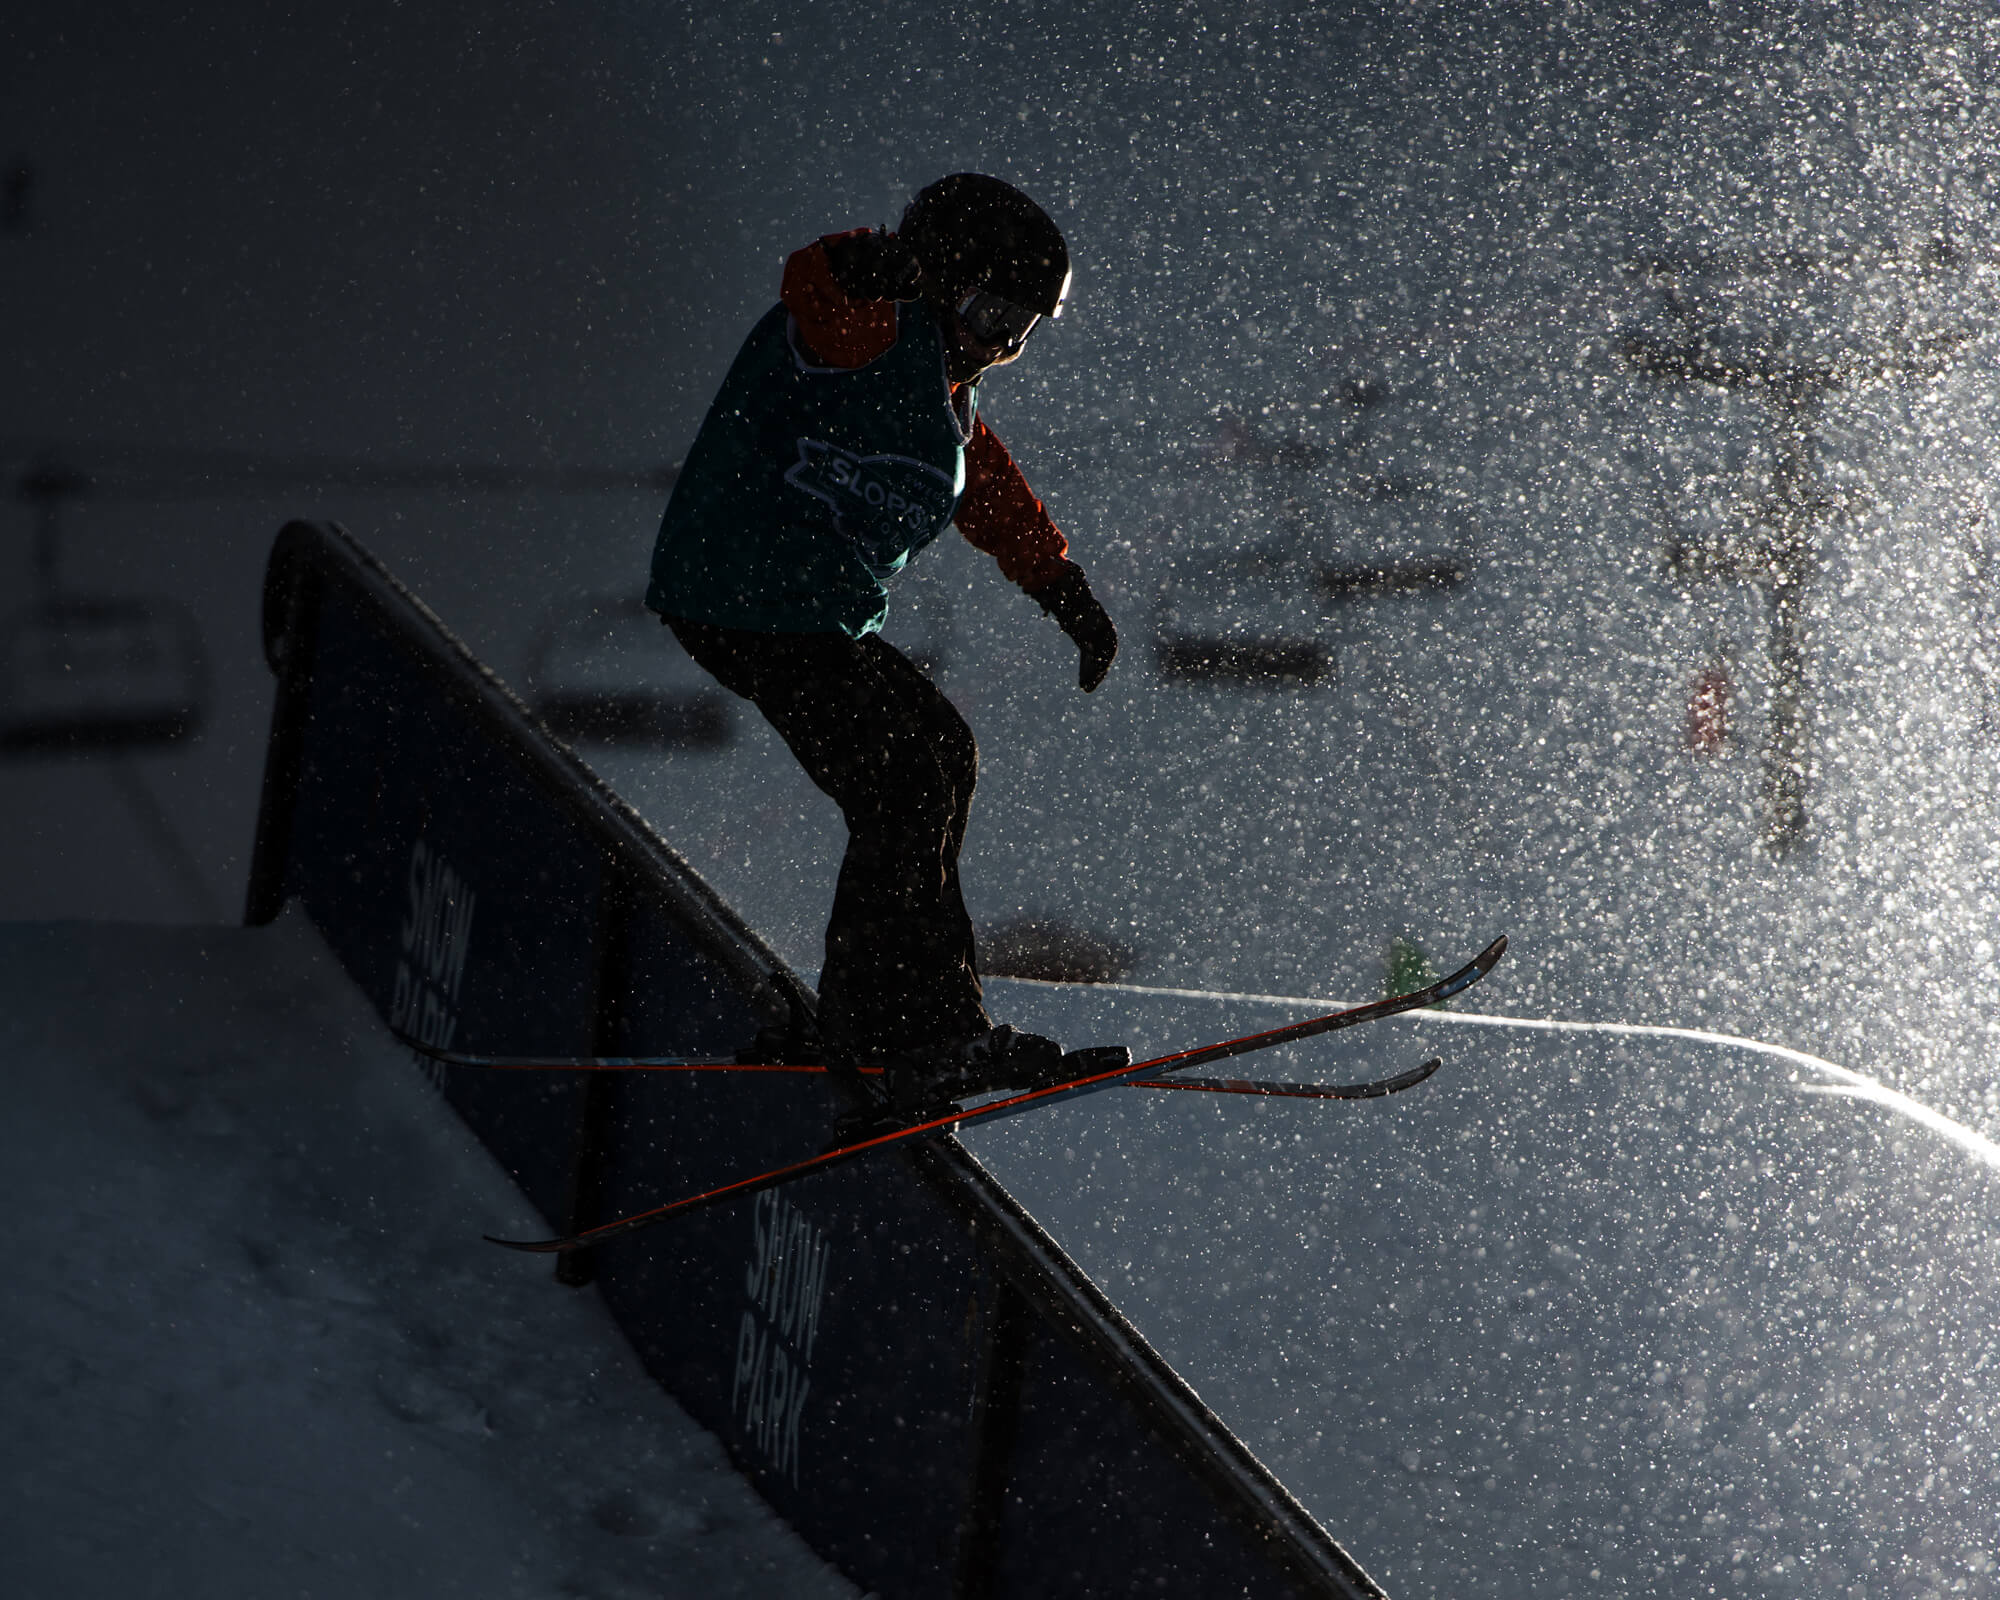 Daylight hours are short here during December and January, but the action keeps rolling after dark.  Daniel Berhnstahl |    Åre 2019